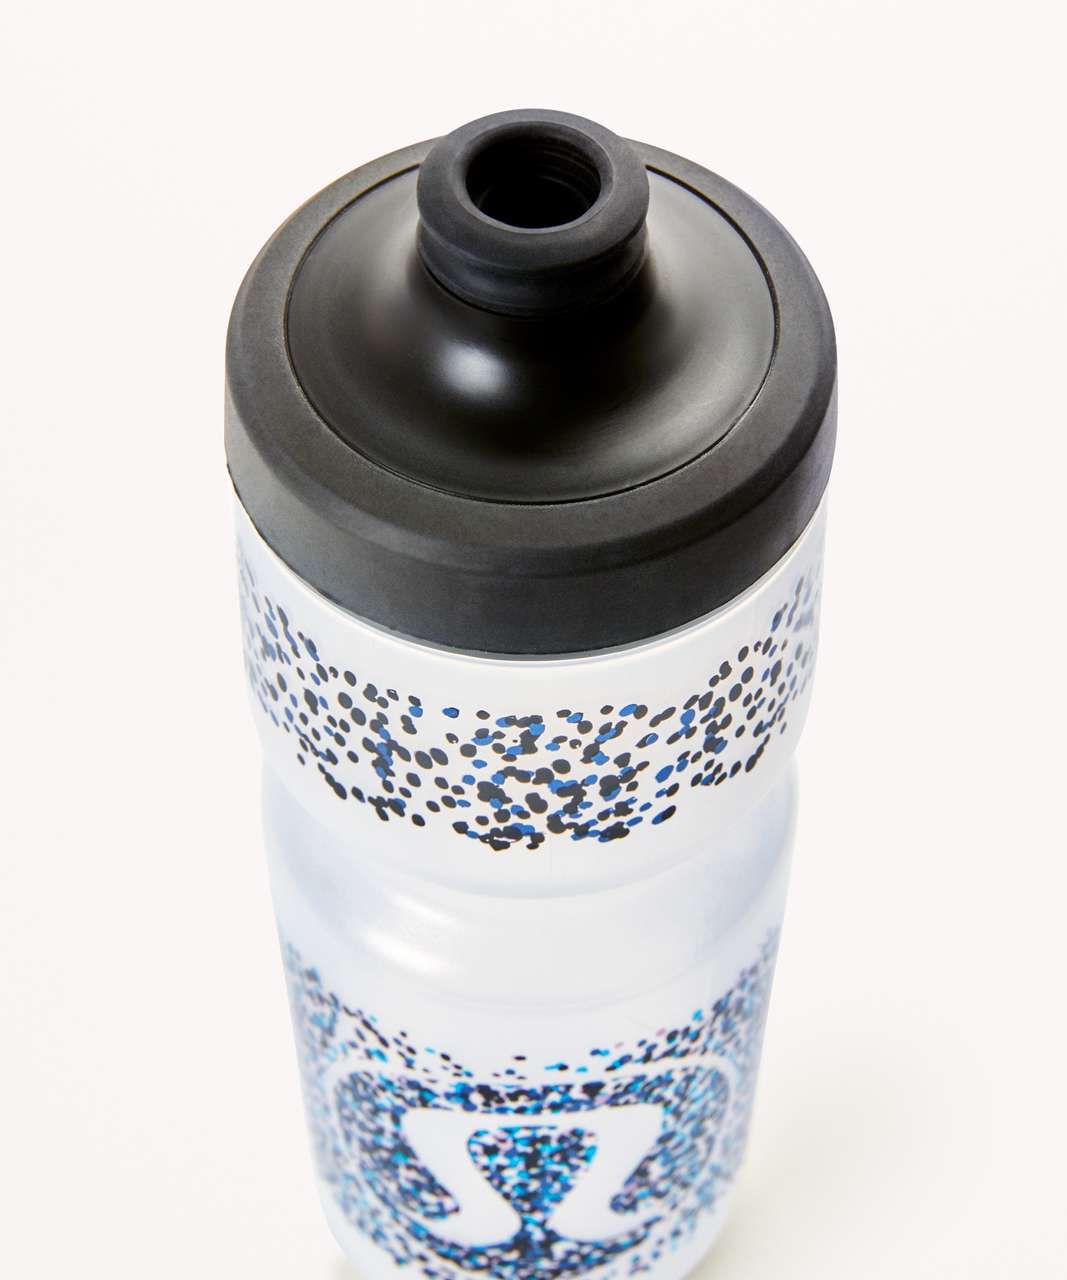 Lululemon Purist Cycling Water Bottle - Purist Dotted Speckle